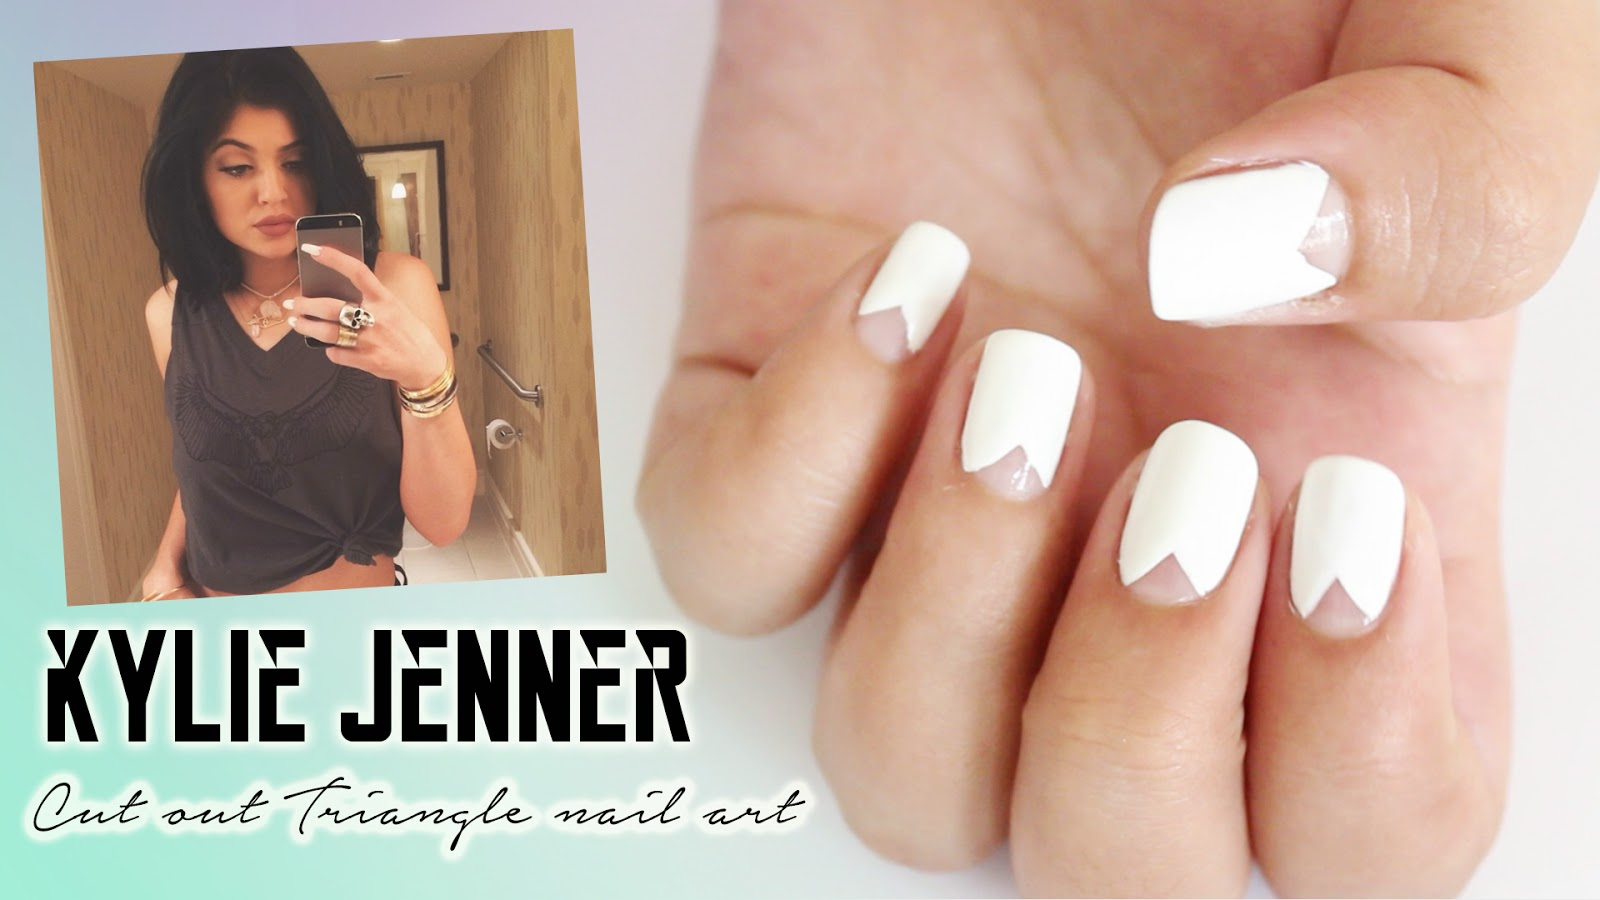 Hellomaphie Kylie Jenner Cut Out Triangle Nail Art No Tools Needed